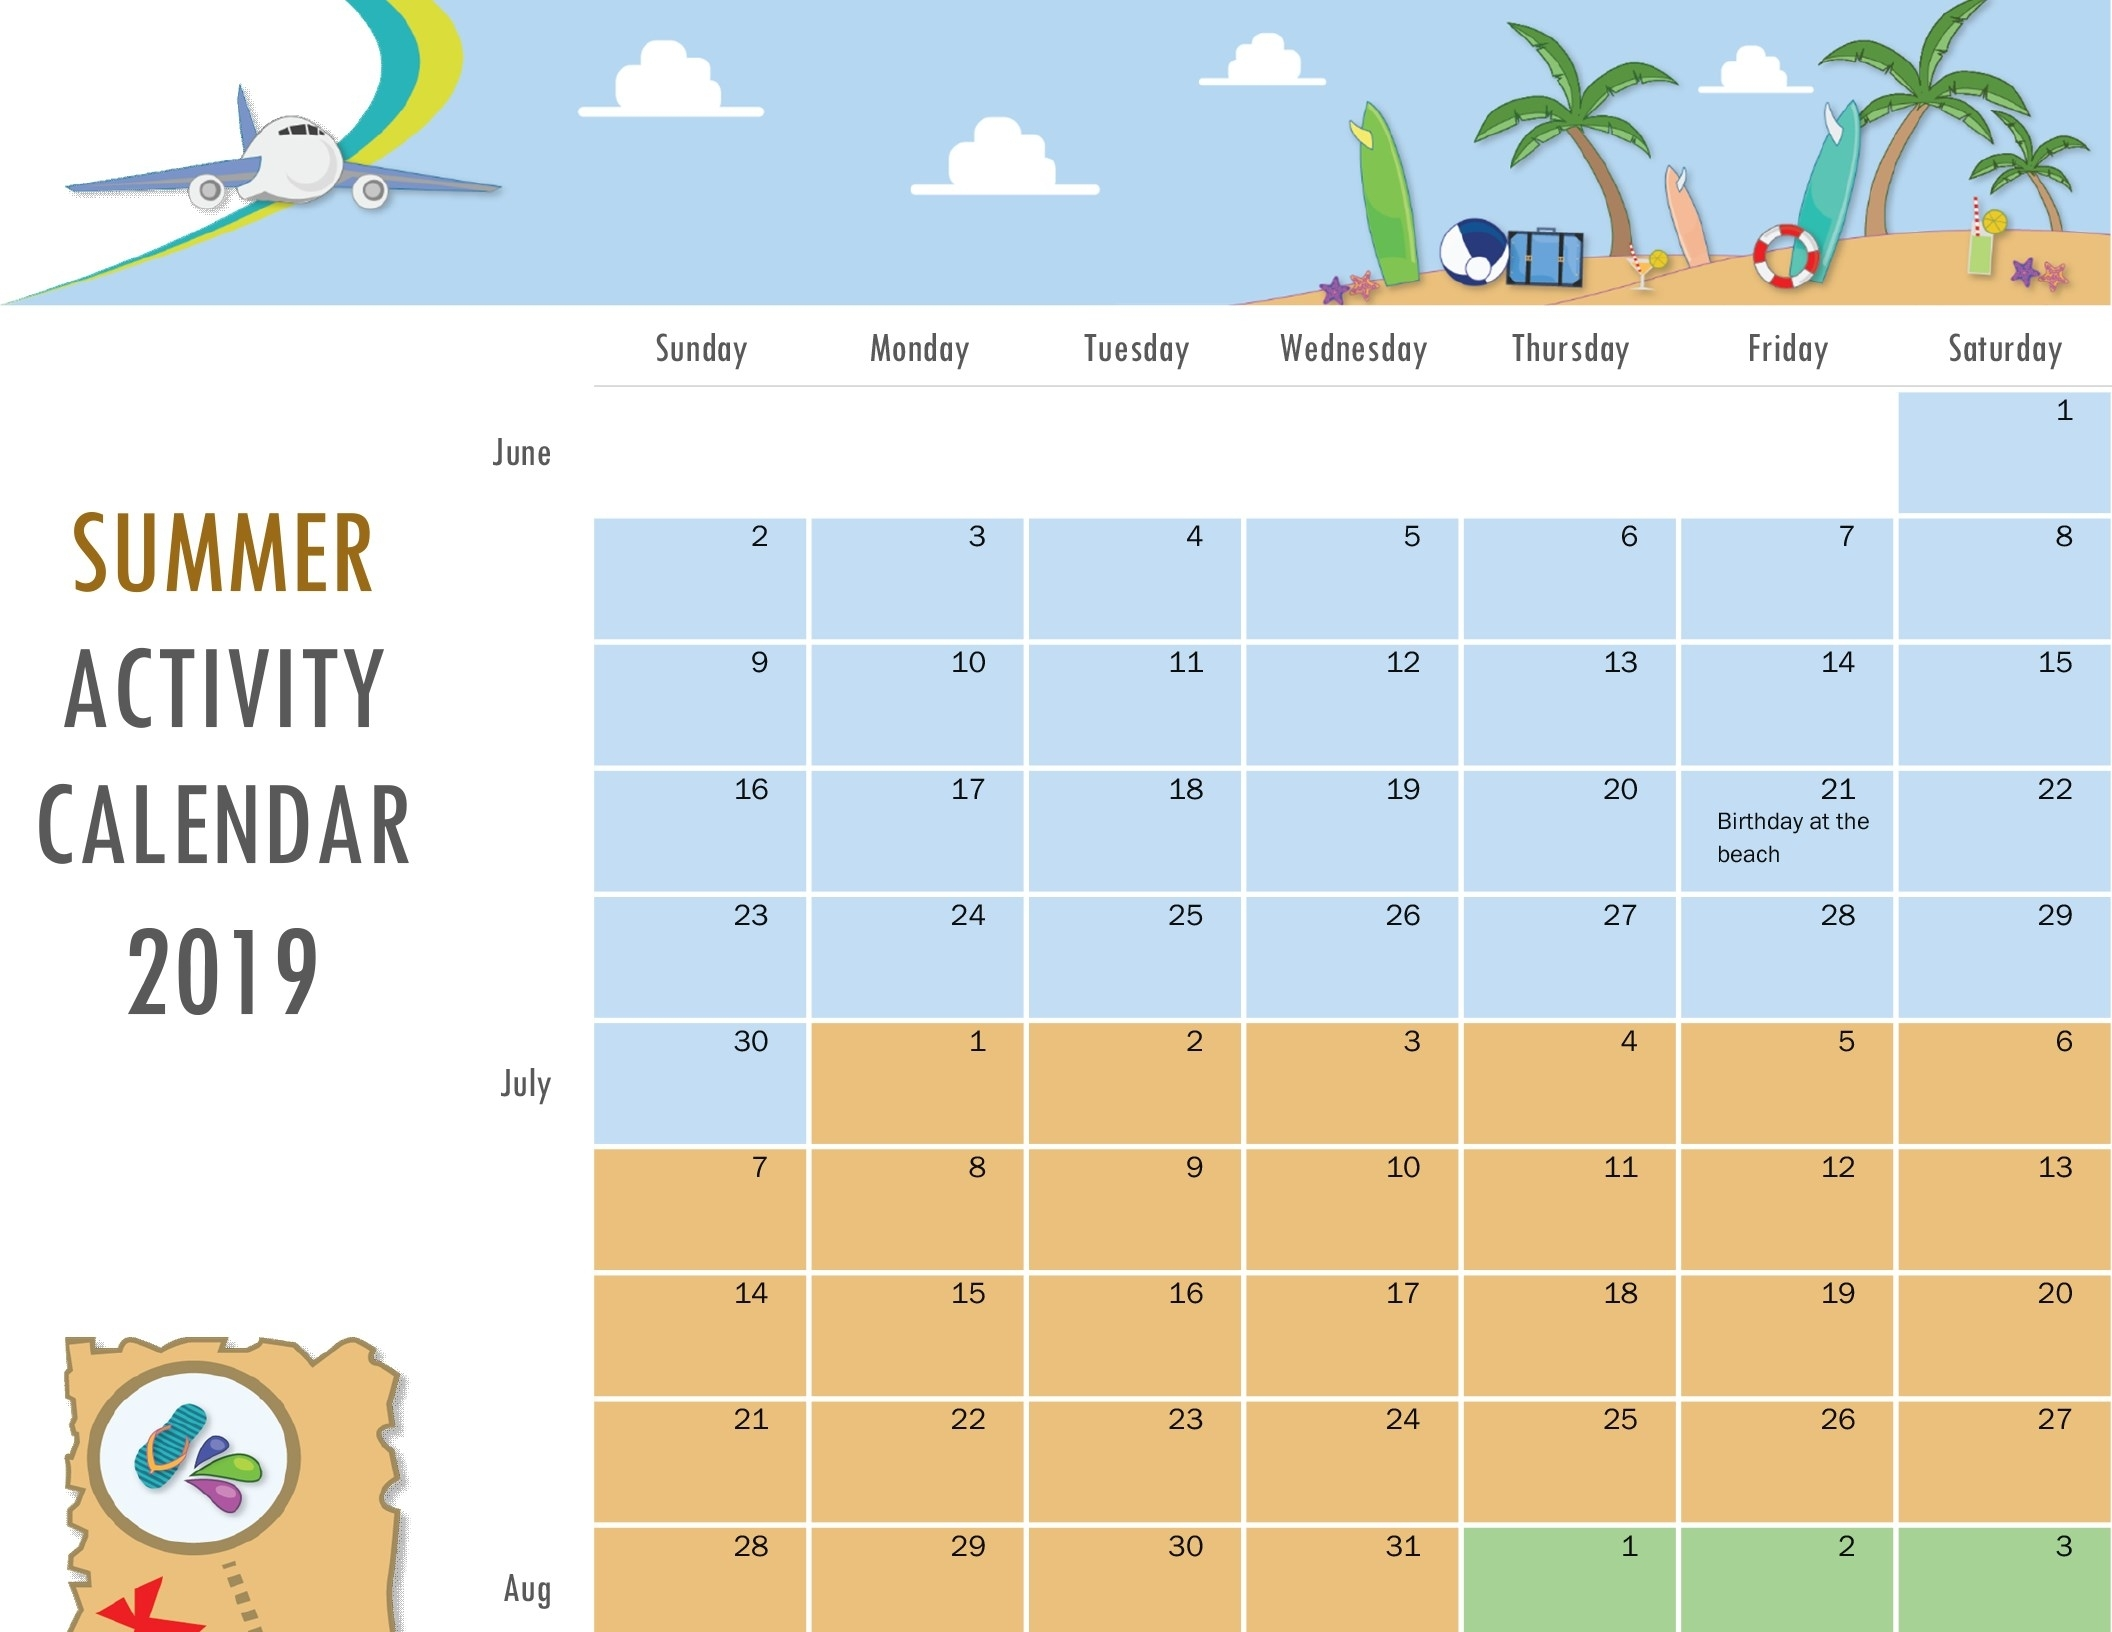 Summer Activity Calendar intended for Summer Picture For Birthday Calendars